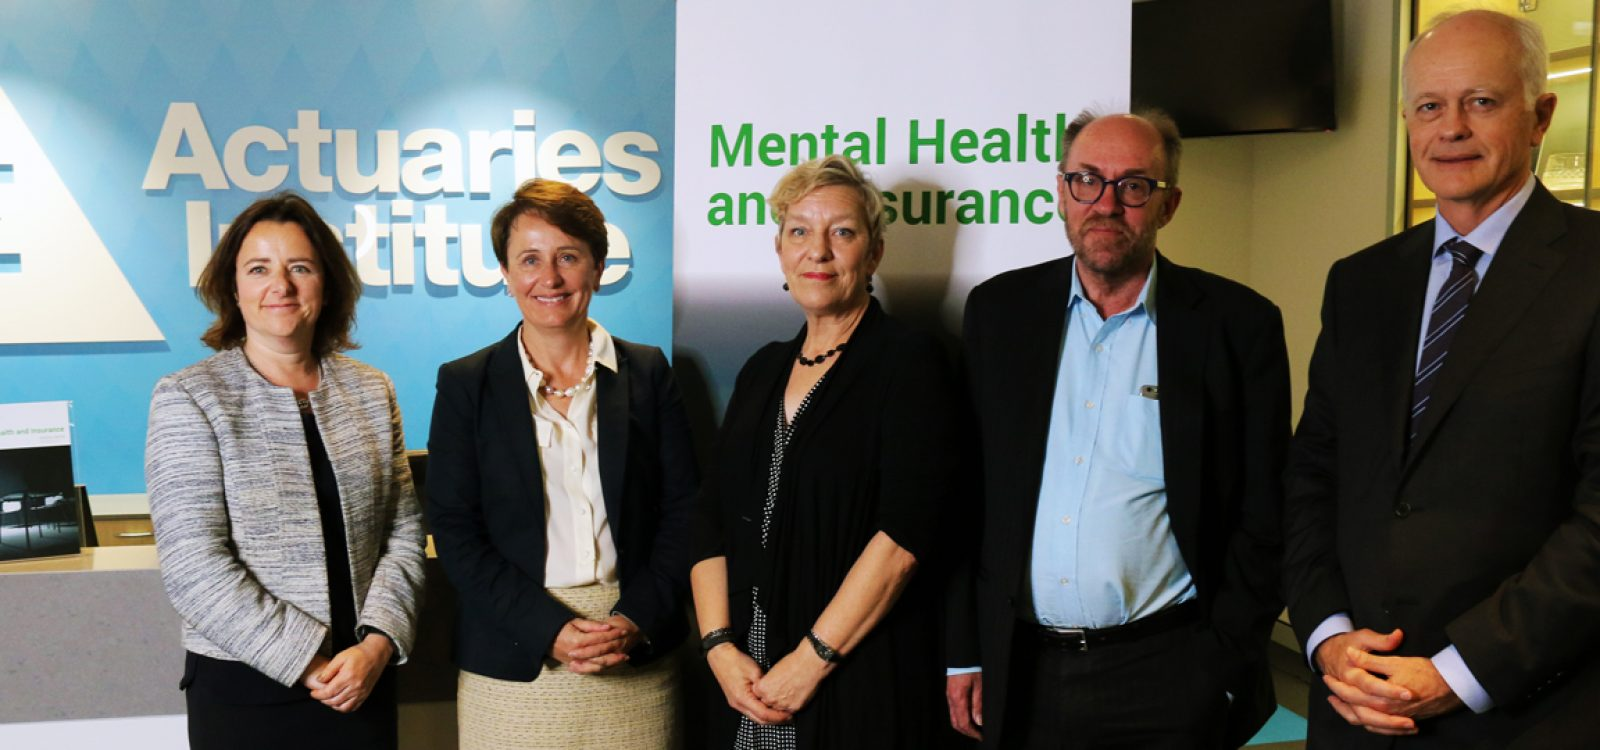 Actuaries report takes the lead in national mental health and insurance conversation